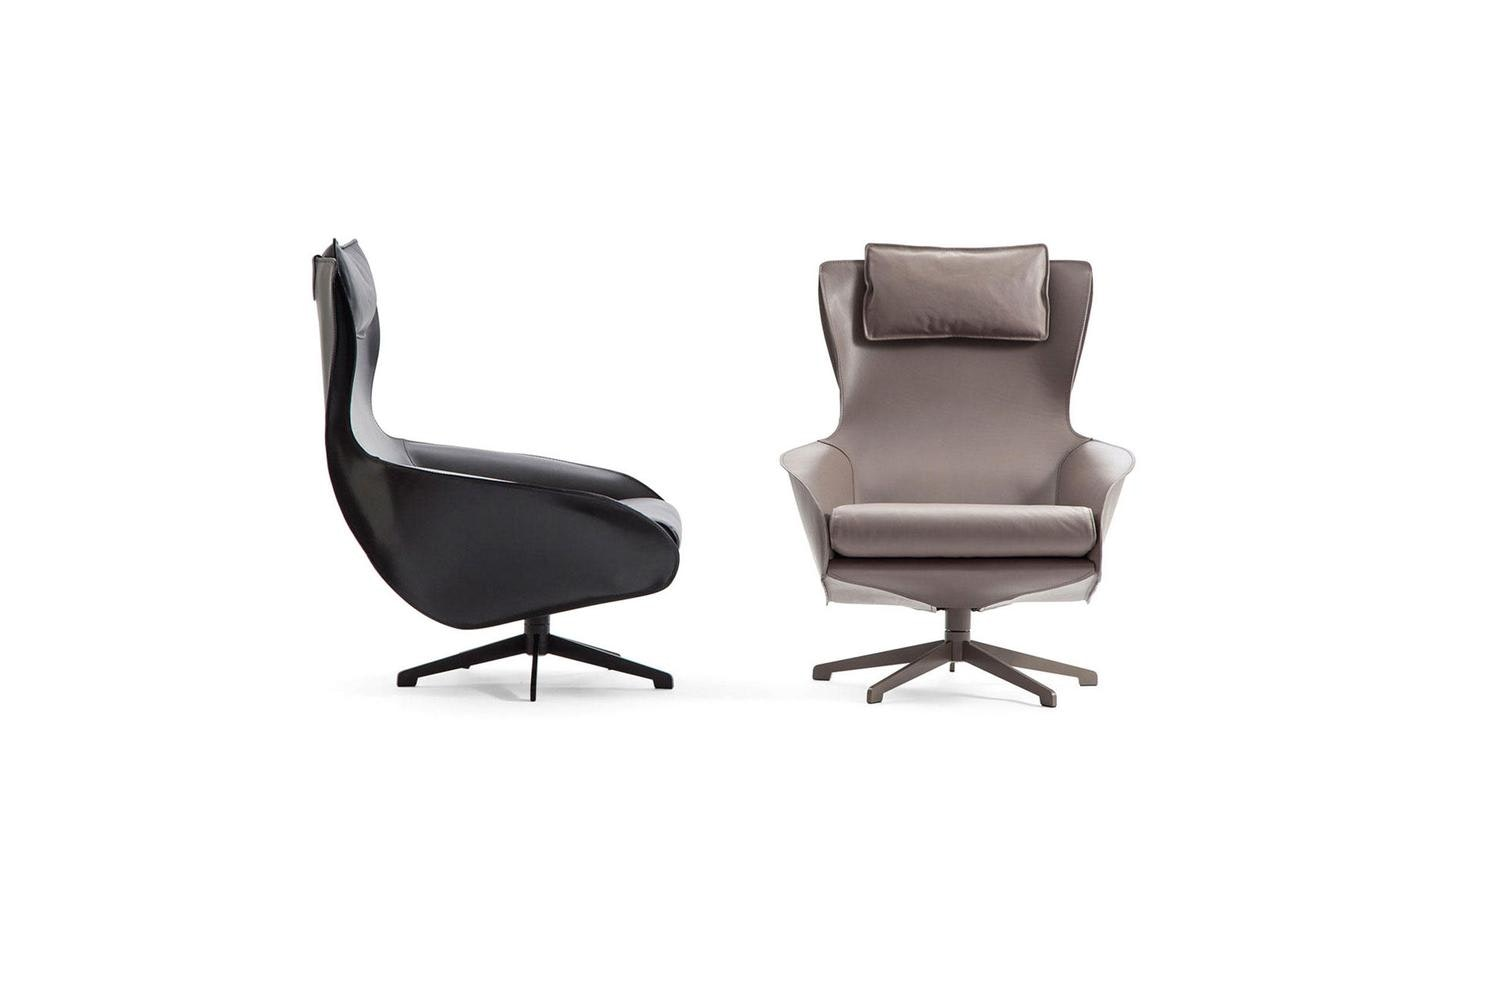 423 Cab Lounge Armchair by Mario Bellini for Cassina